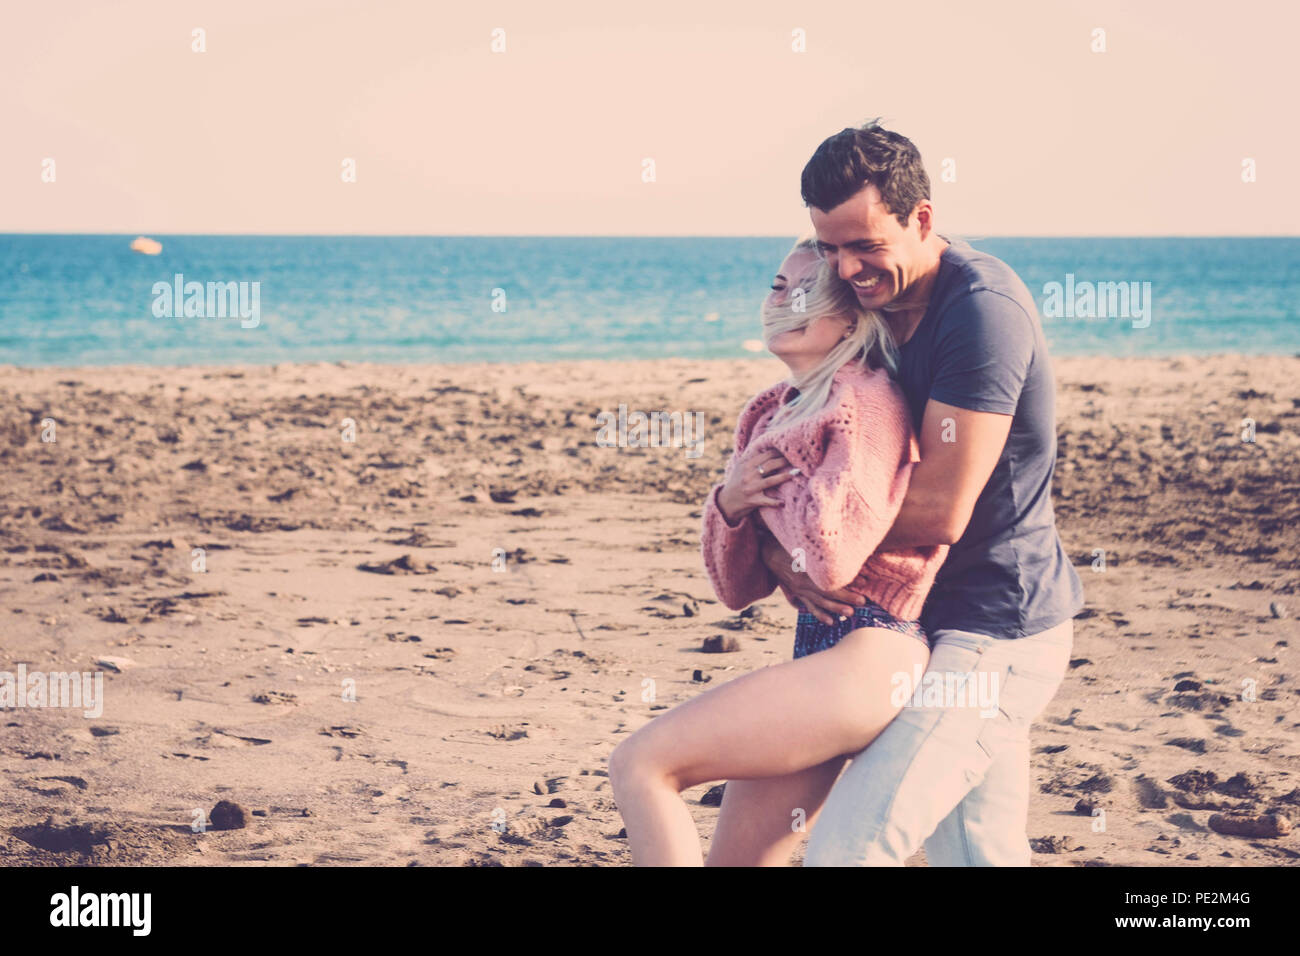 true and real happiness on these young beautiful people faces. nice blonde girl and cute black hair guy with big smile and laugh with ocean and beach  - Stock Image